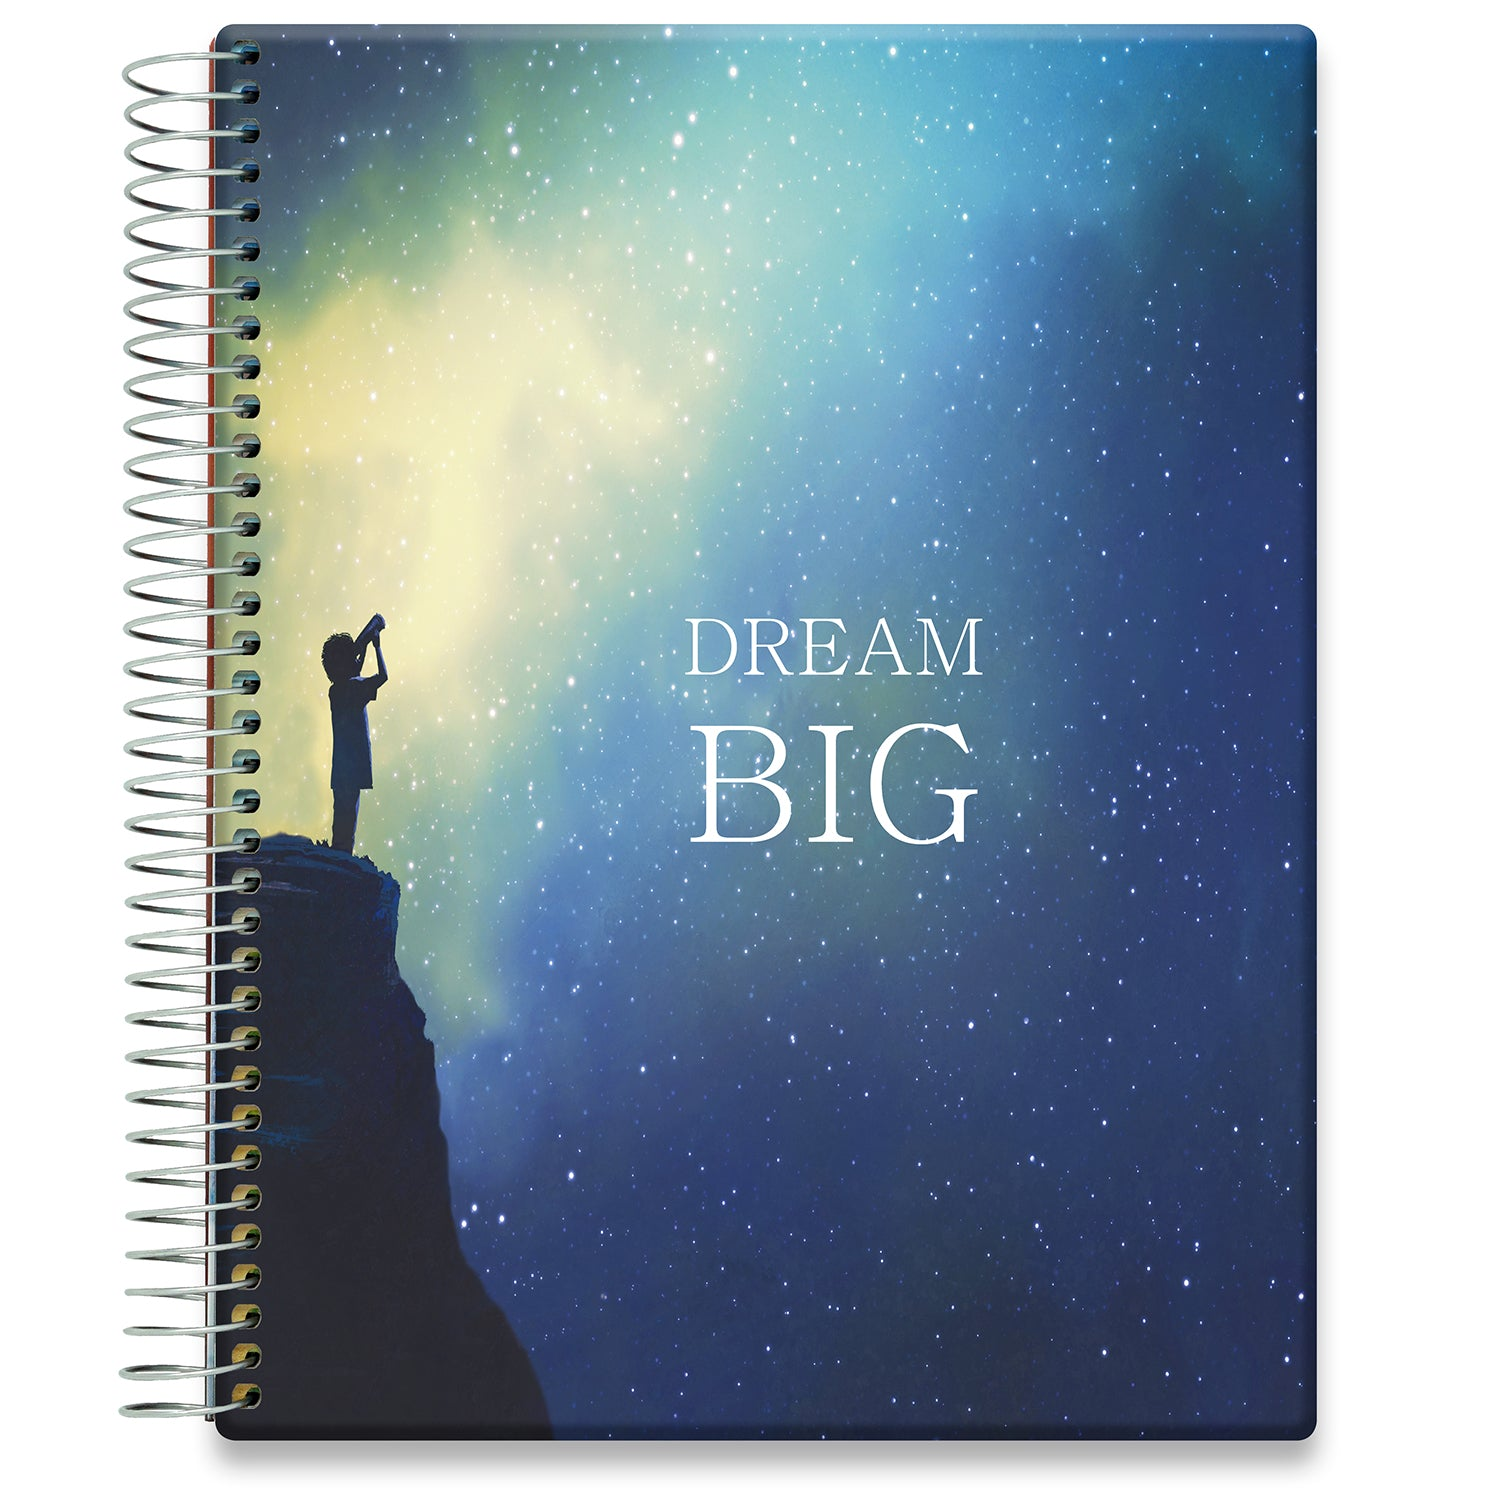 Planner 2021-2022 • April 2021 to June 2022 Academic Year • 8.5x11 Hardcover • Dream Big